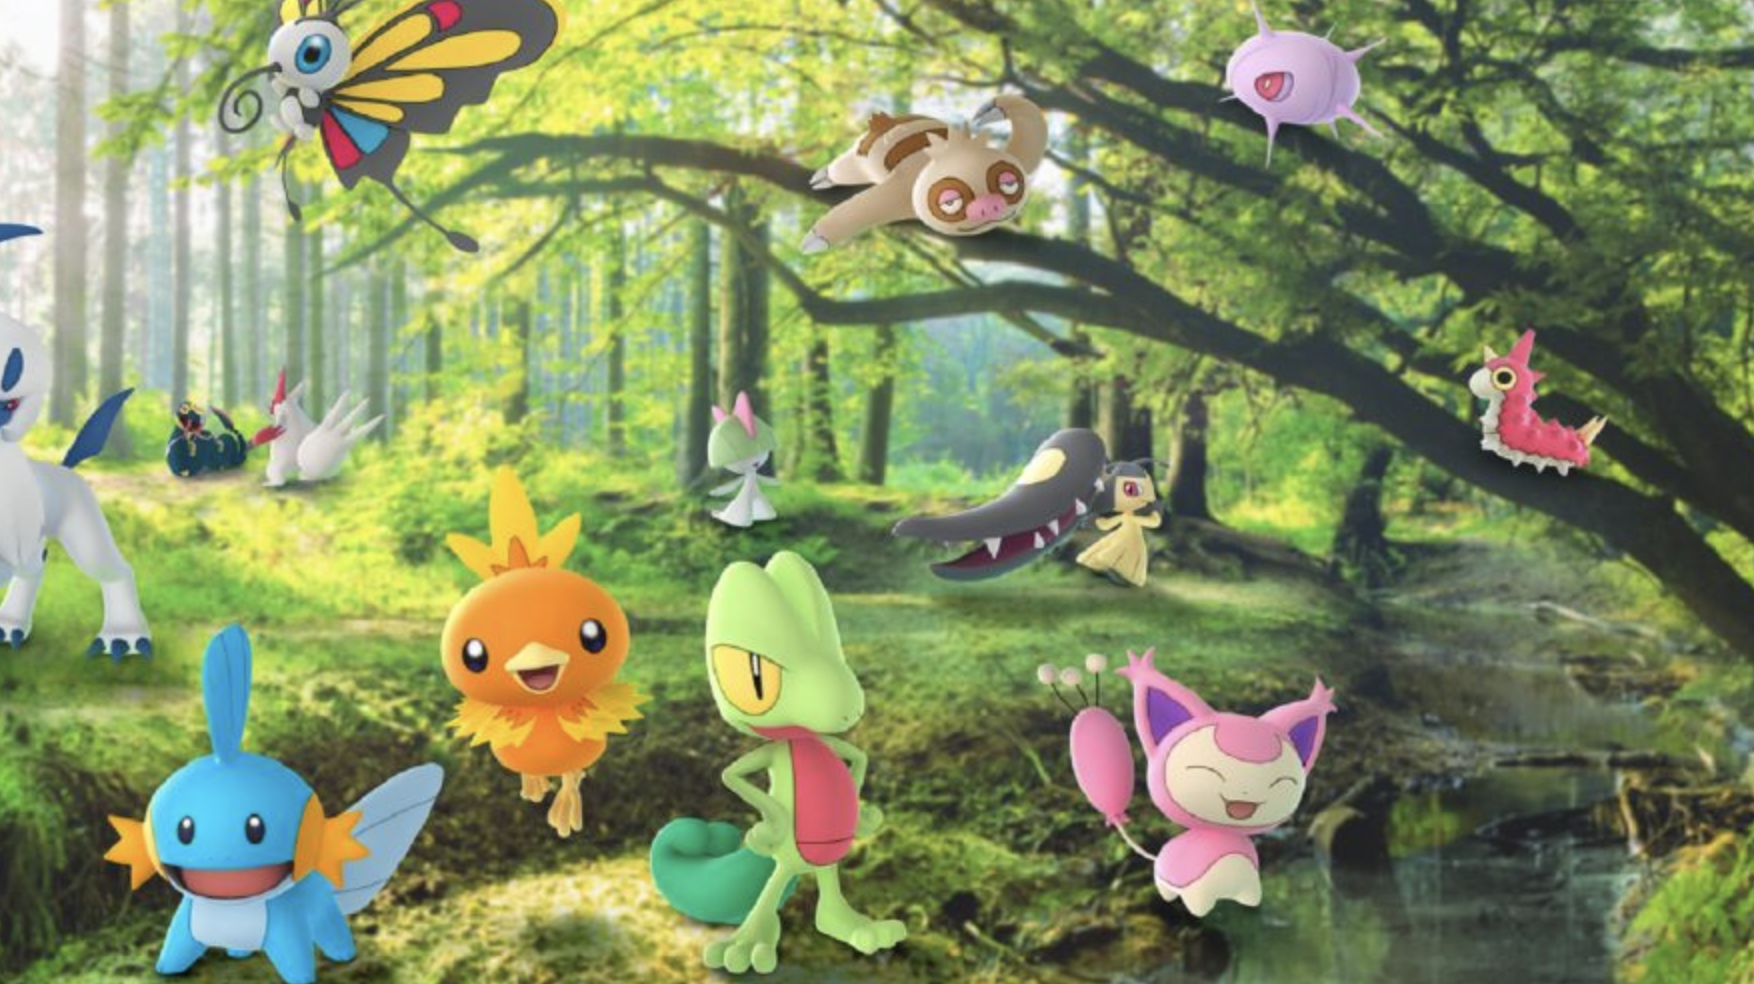 February Pokemon Go Events 2021